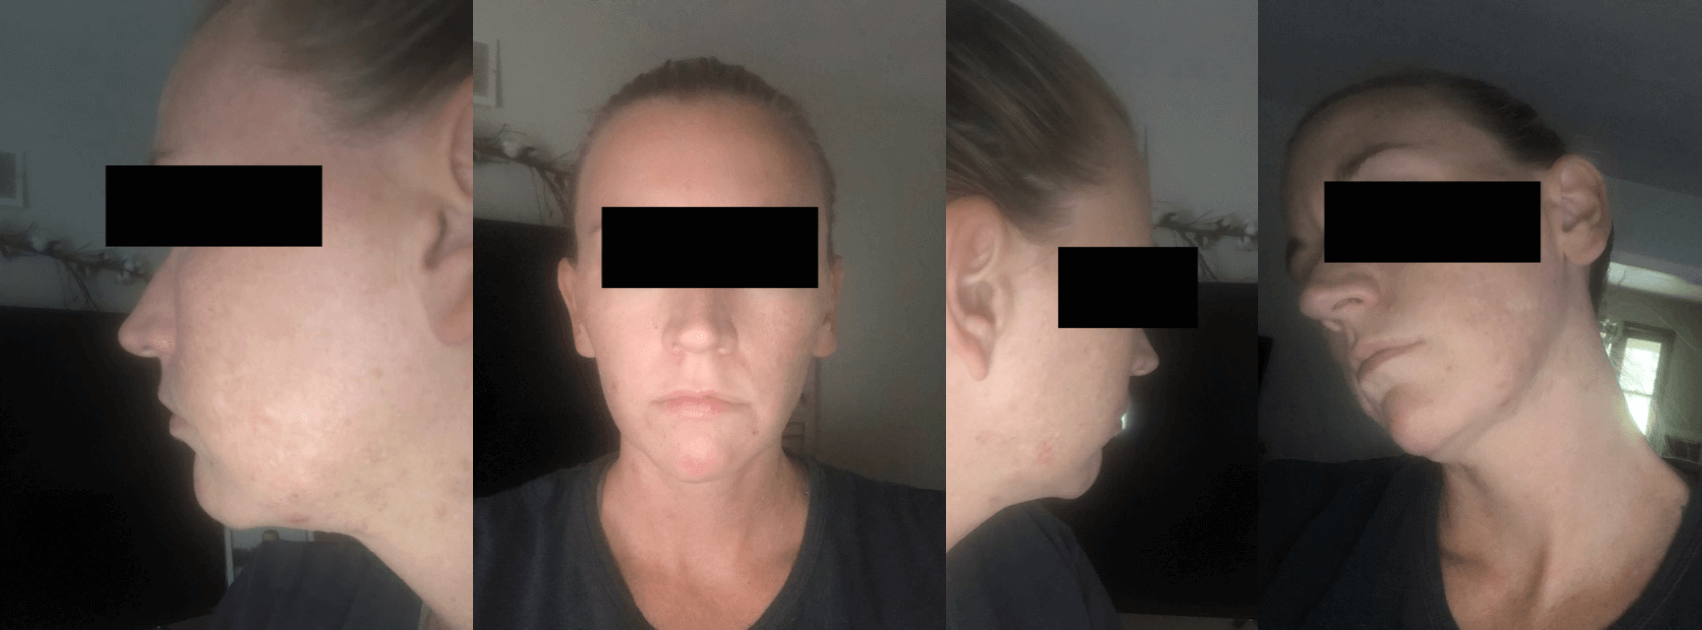 Apostrophe Tretinoin Formula and Spironolactone Before and After